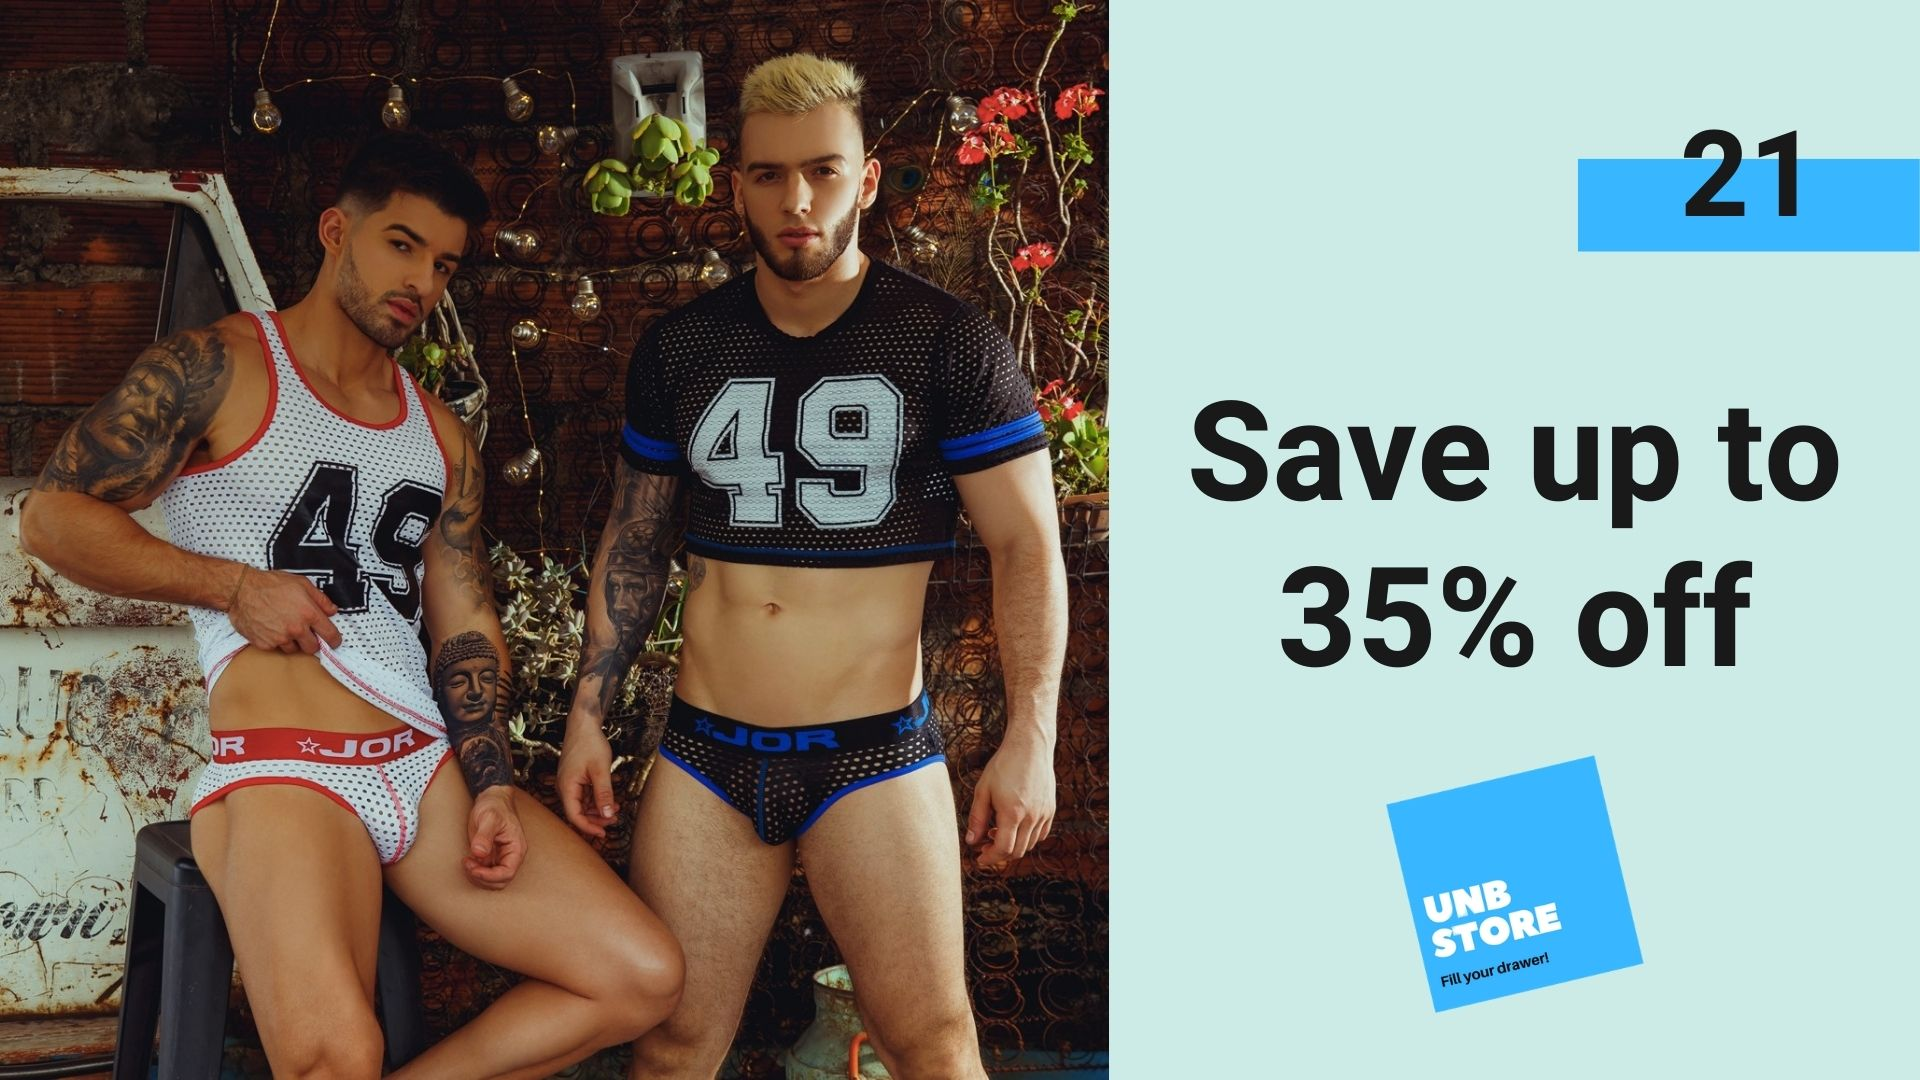 Save up to 35% off JOR and more at the UNB Store